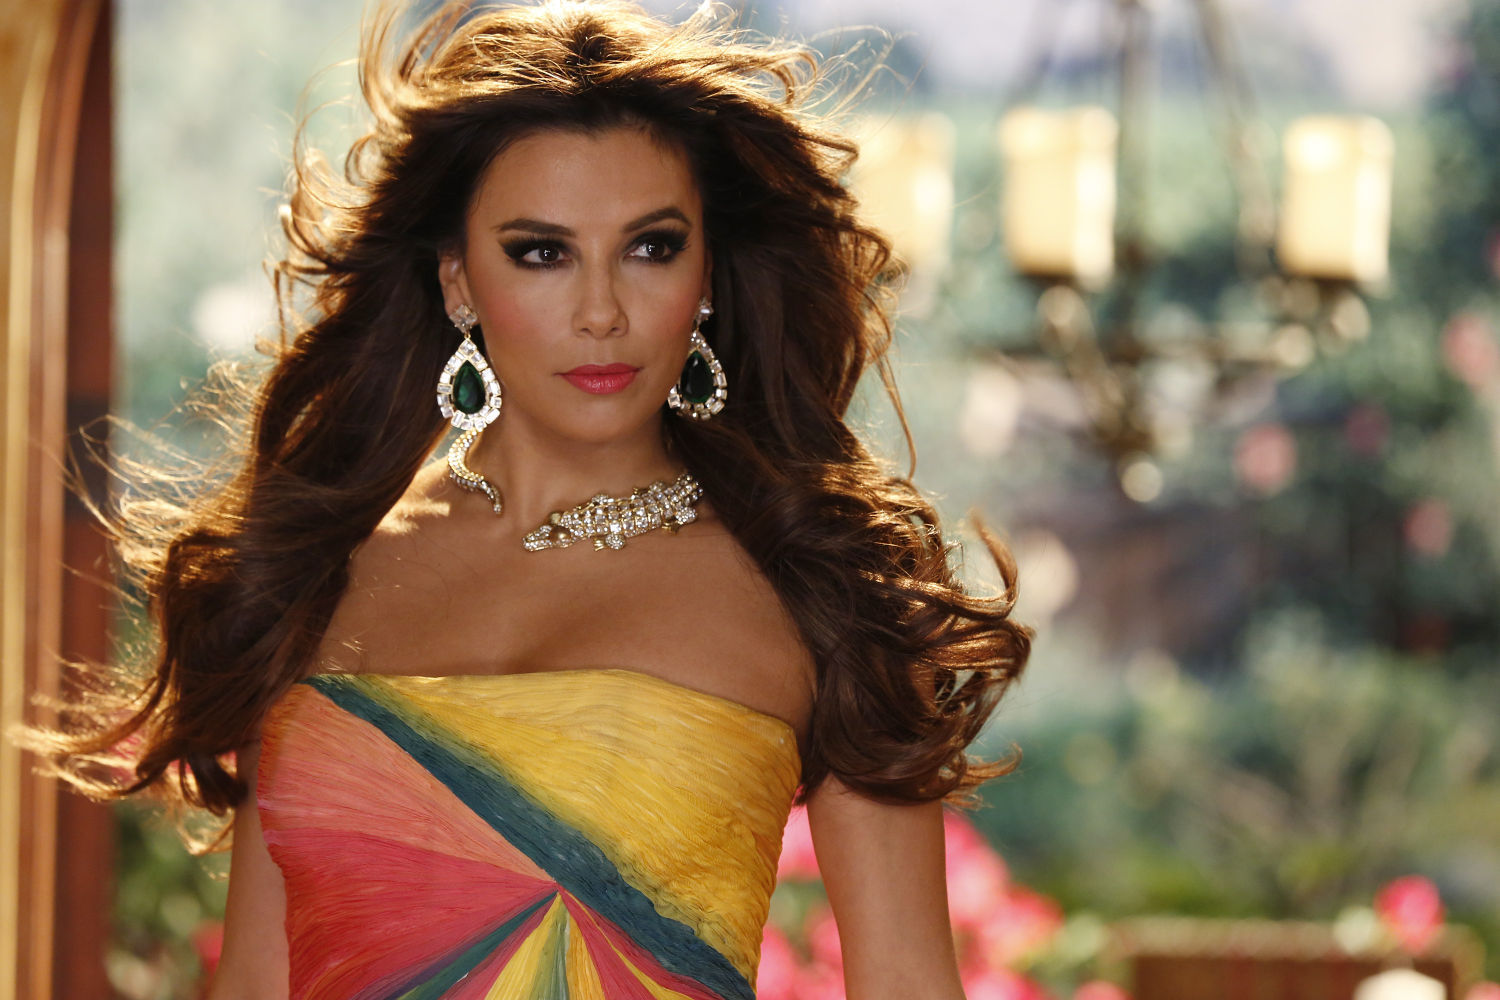 Nbc dating show eva longoria hair